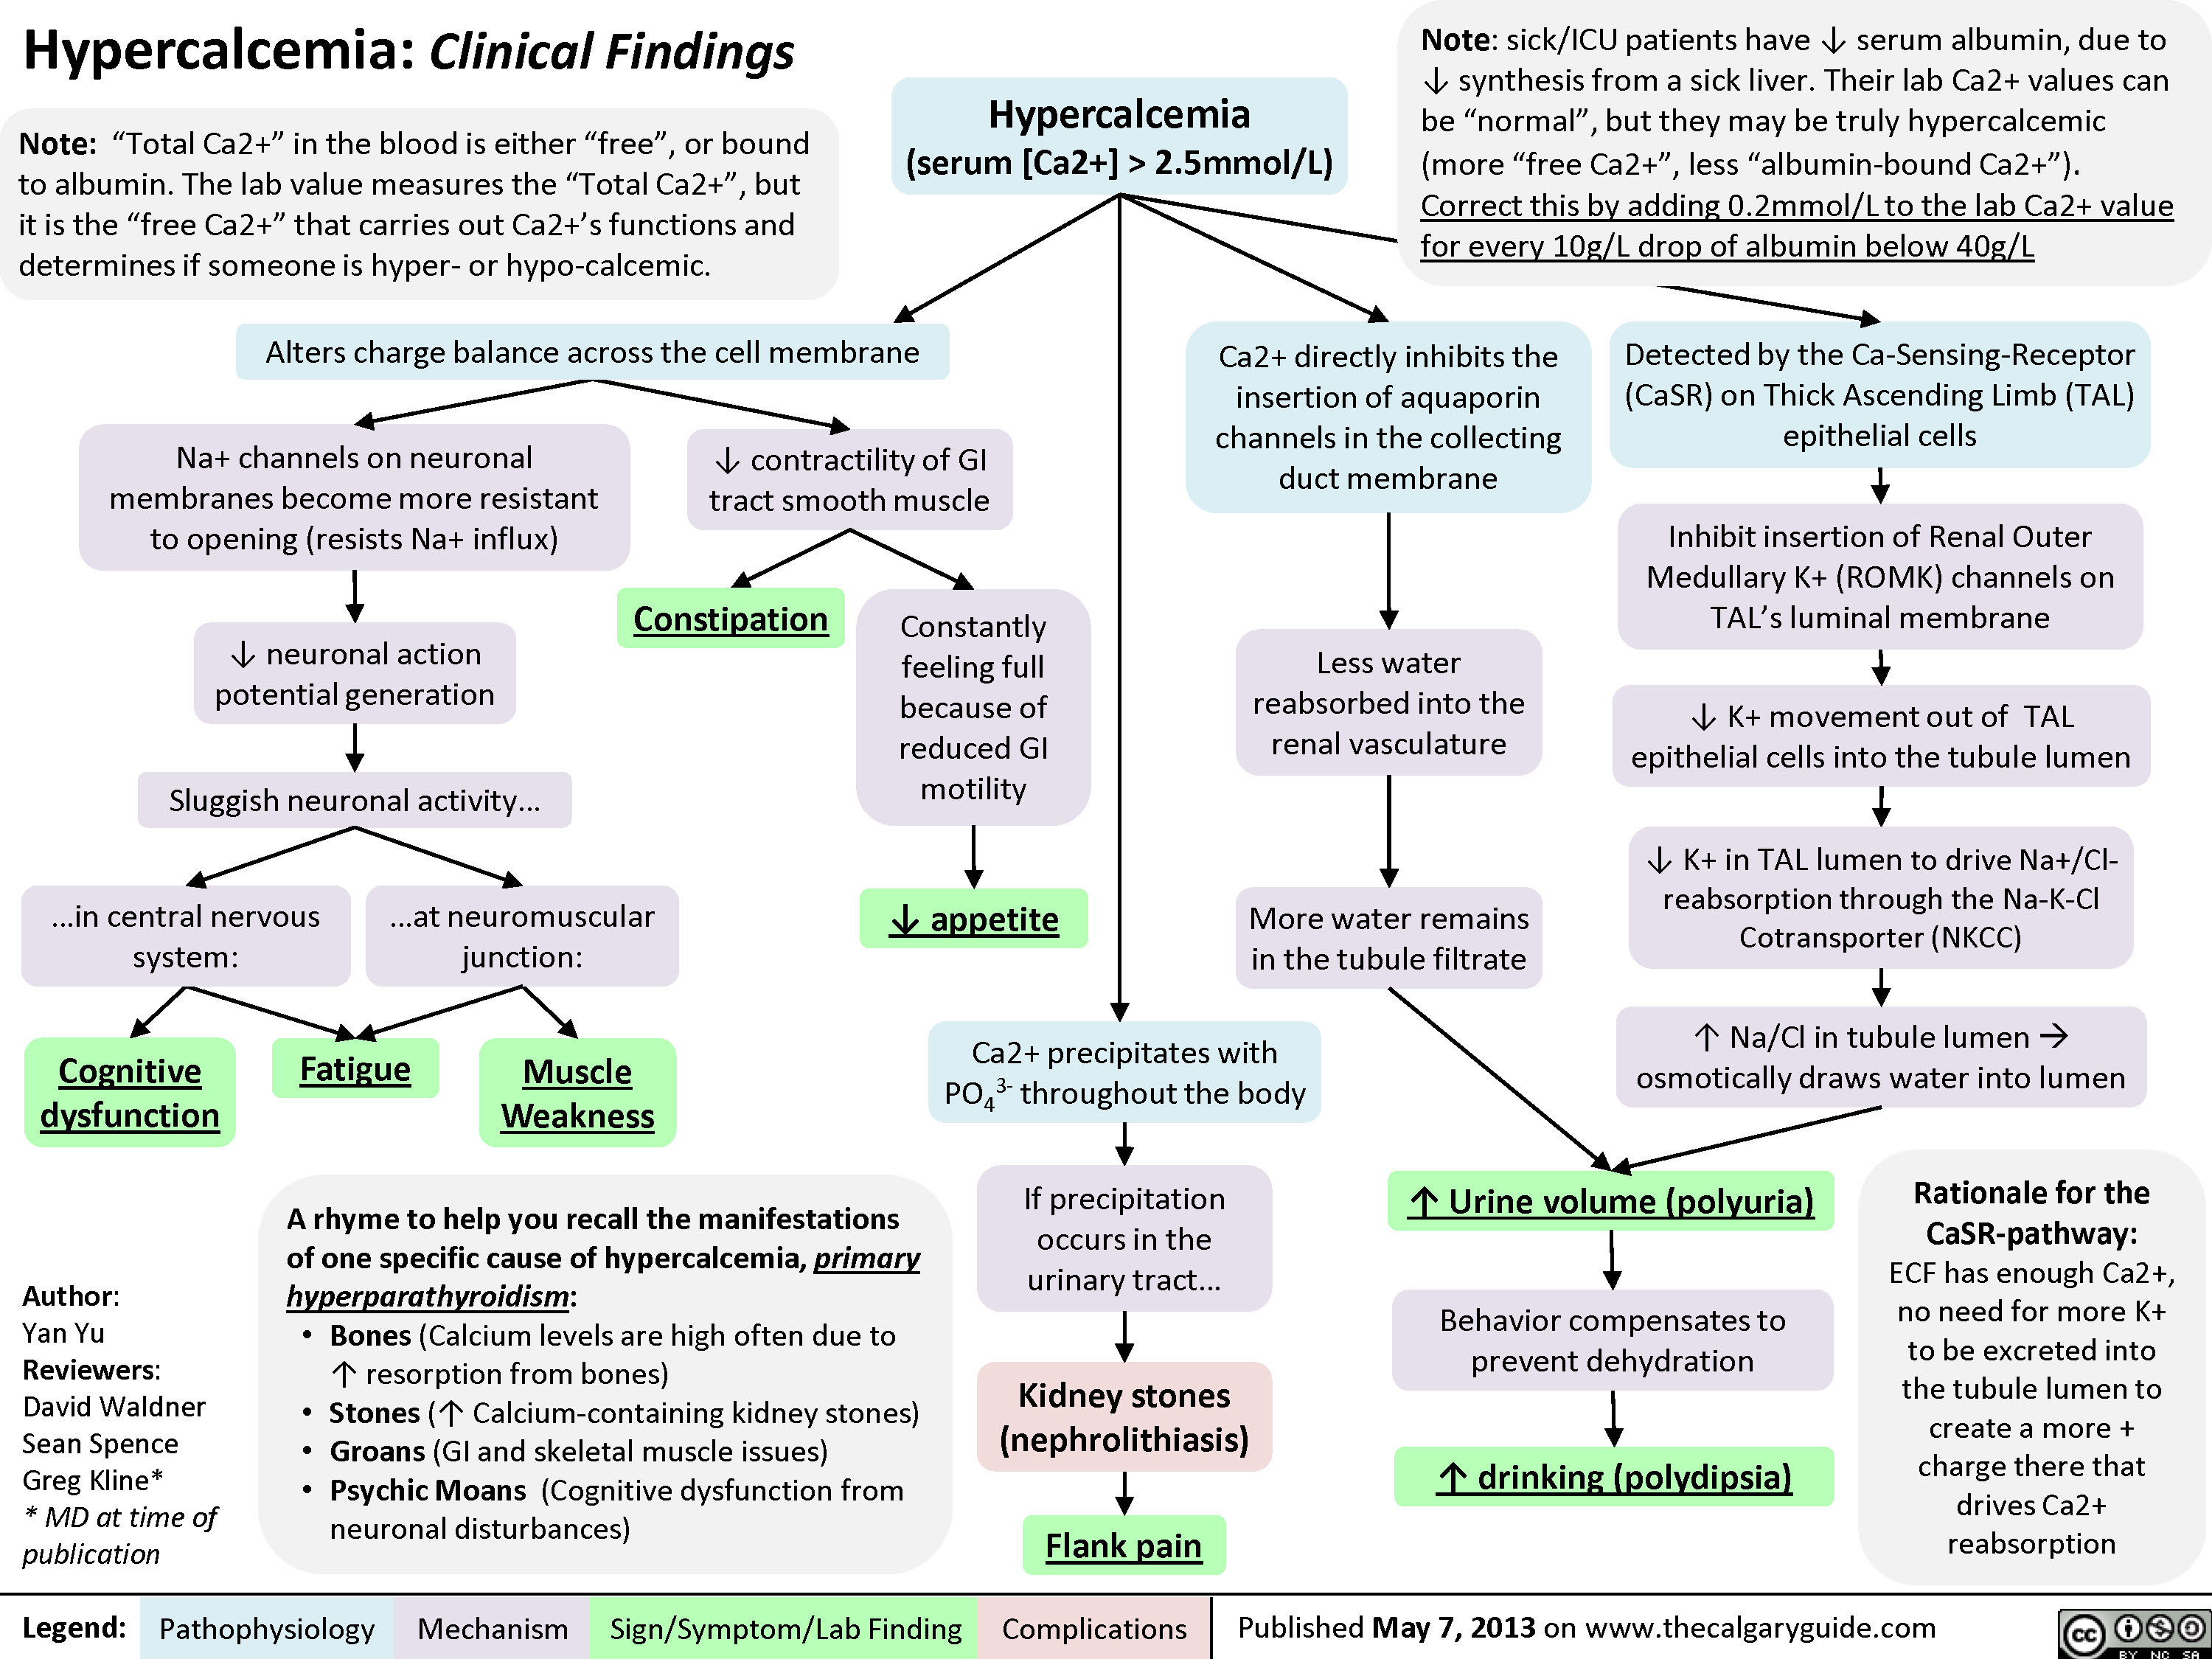 Hypercalcemia - Clinical Findings